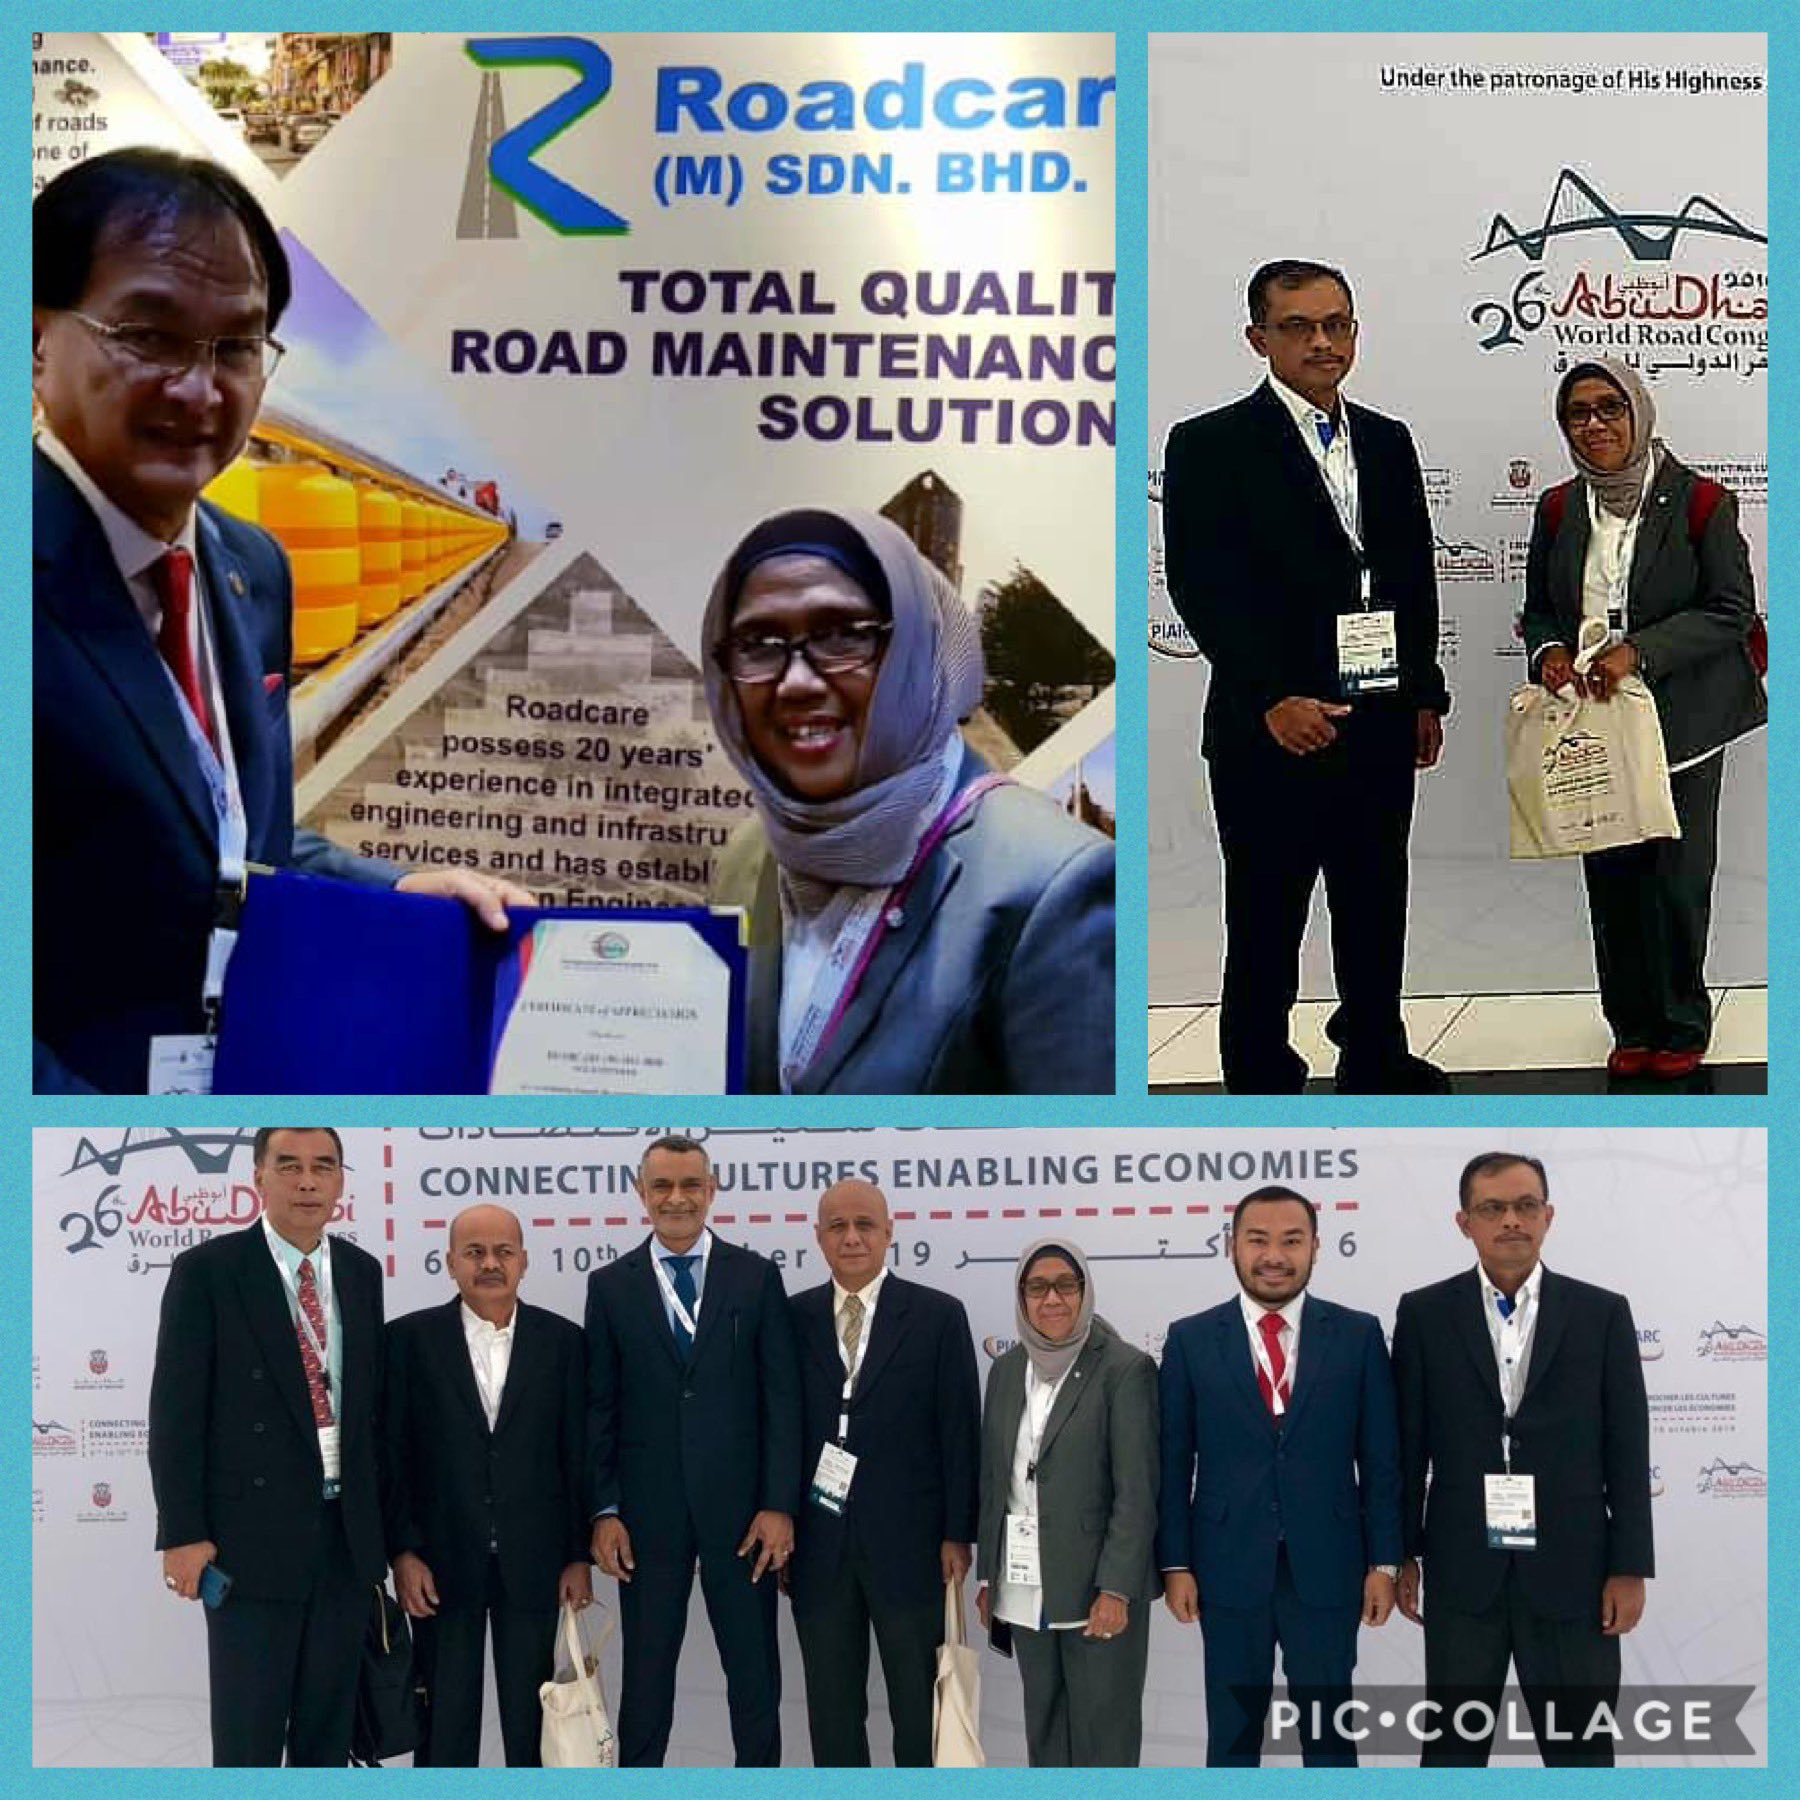 26th WORLD ROAD CONGRESS